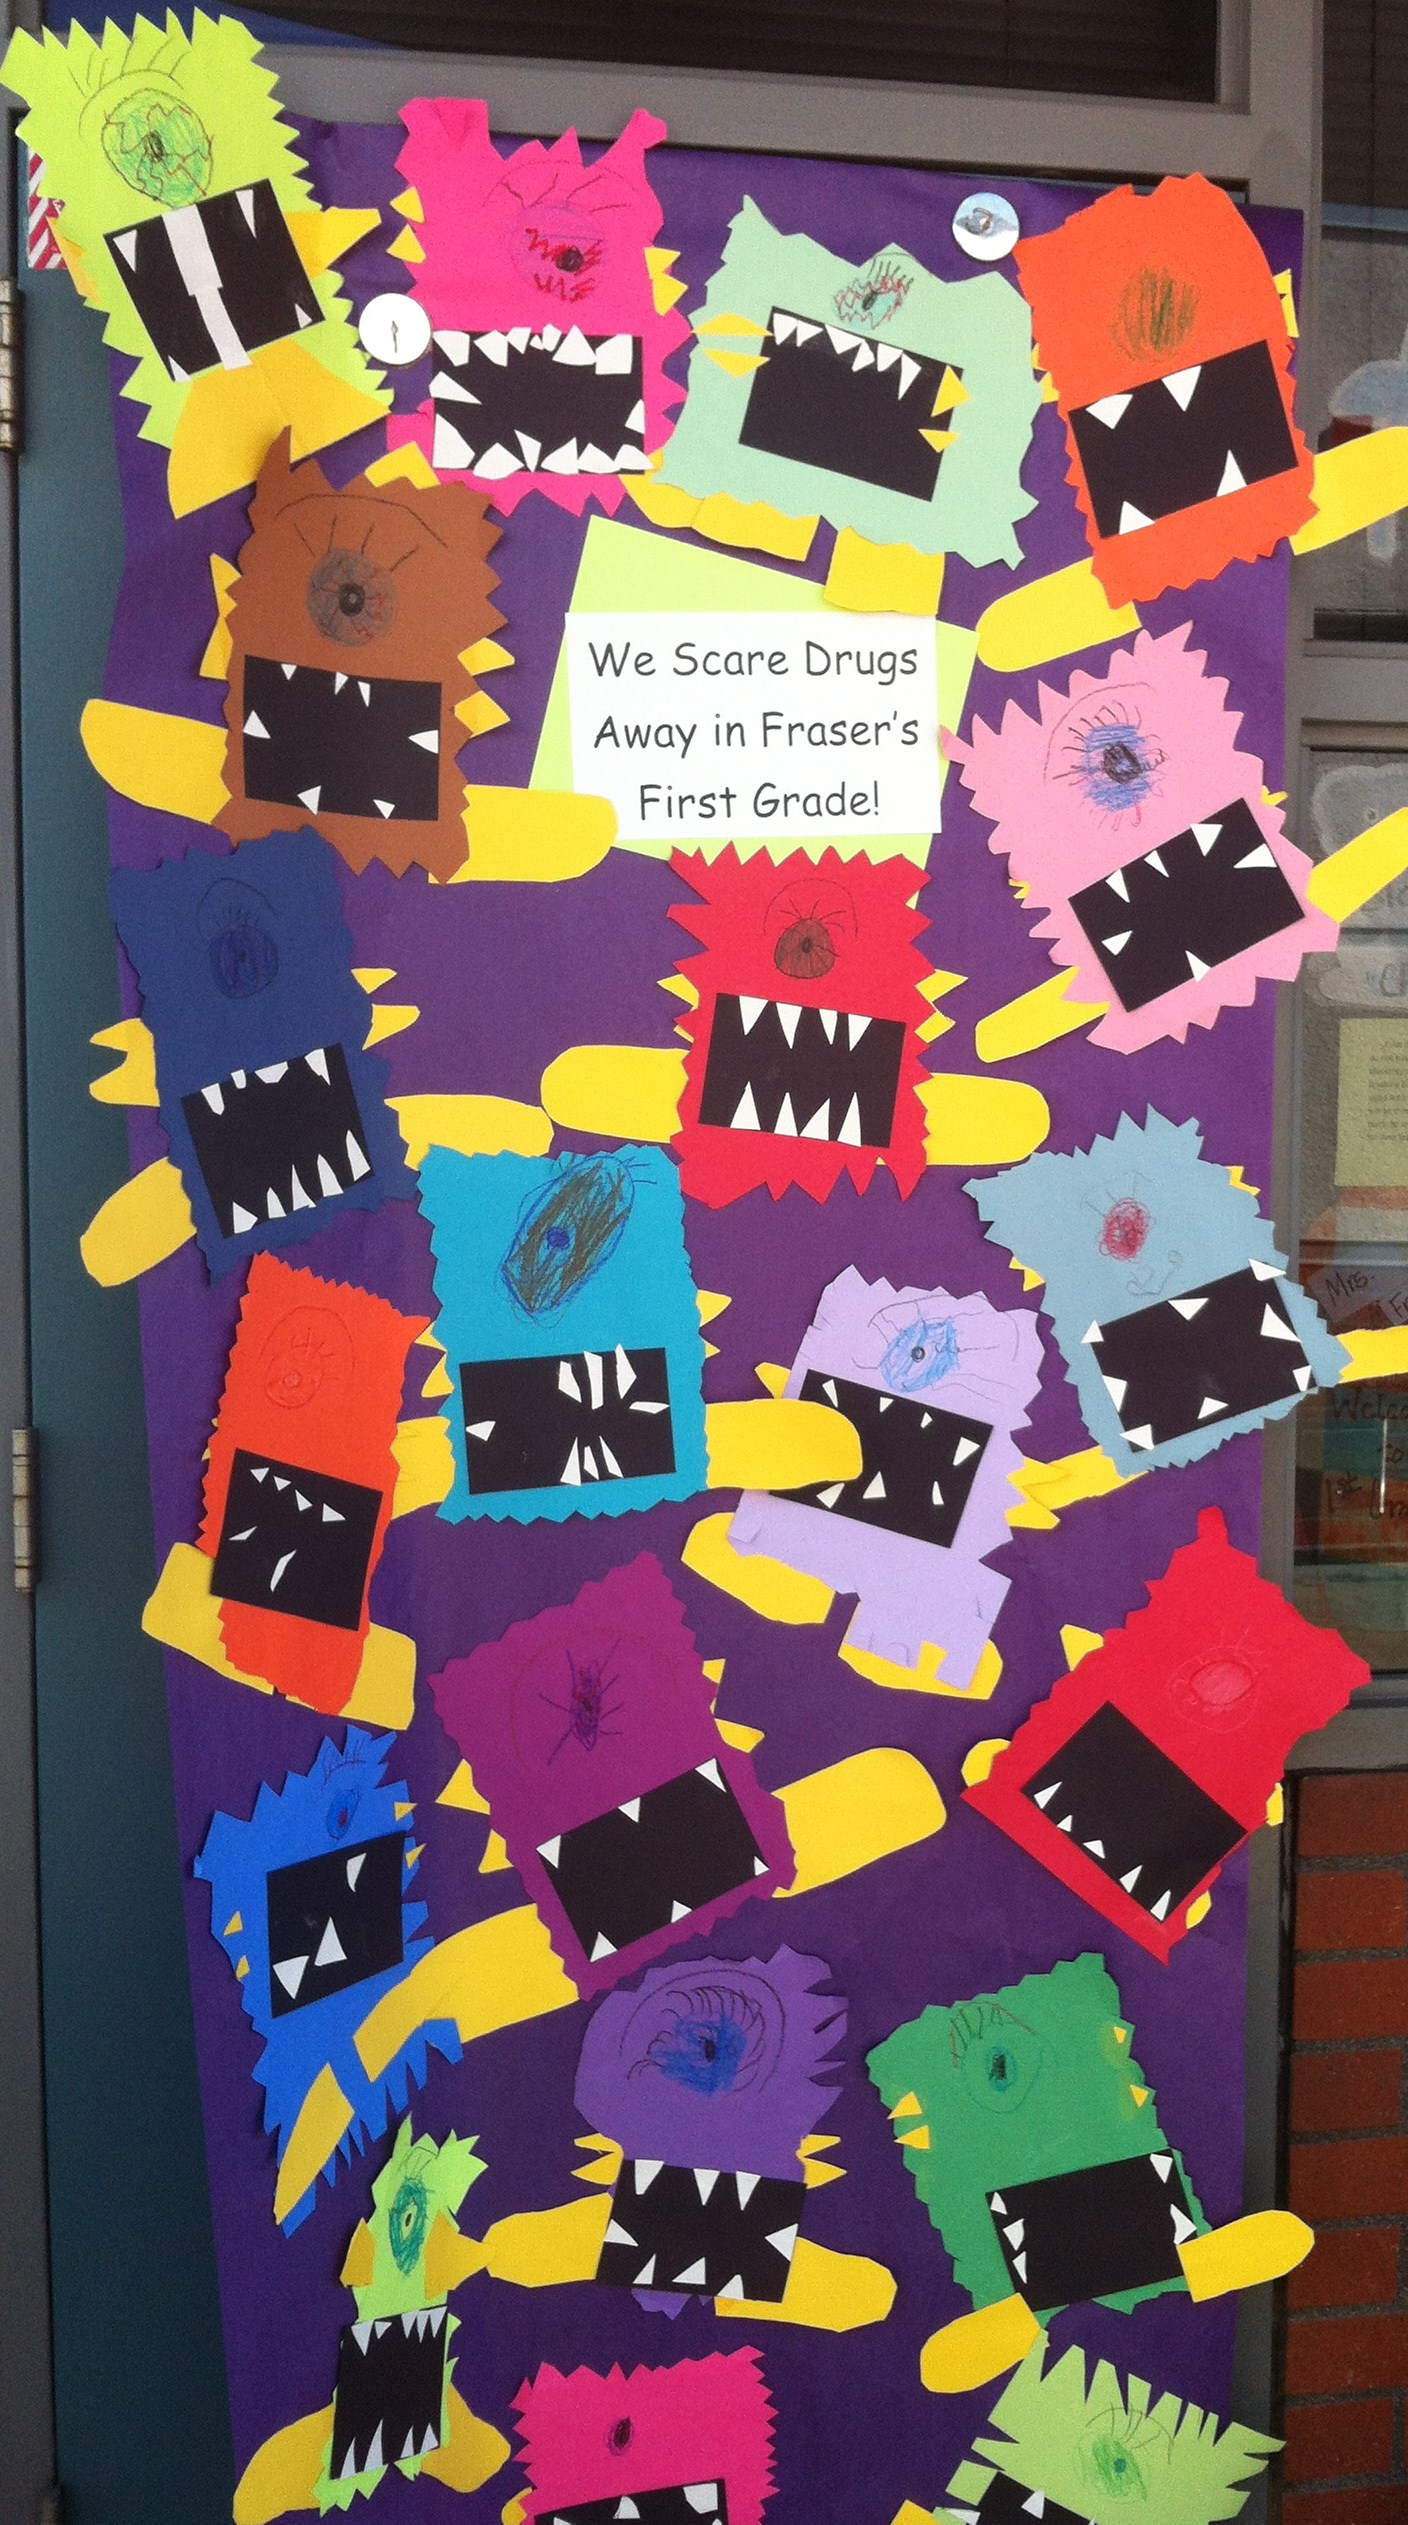 Christmas door decorating contest ideas office - Focused On Saying No To Drugs Our Classes Worked Hard To Make Door